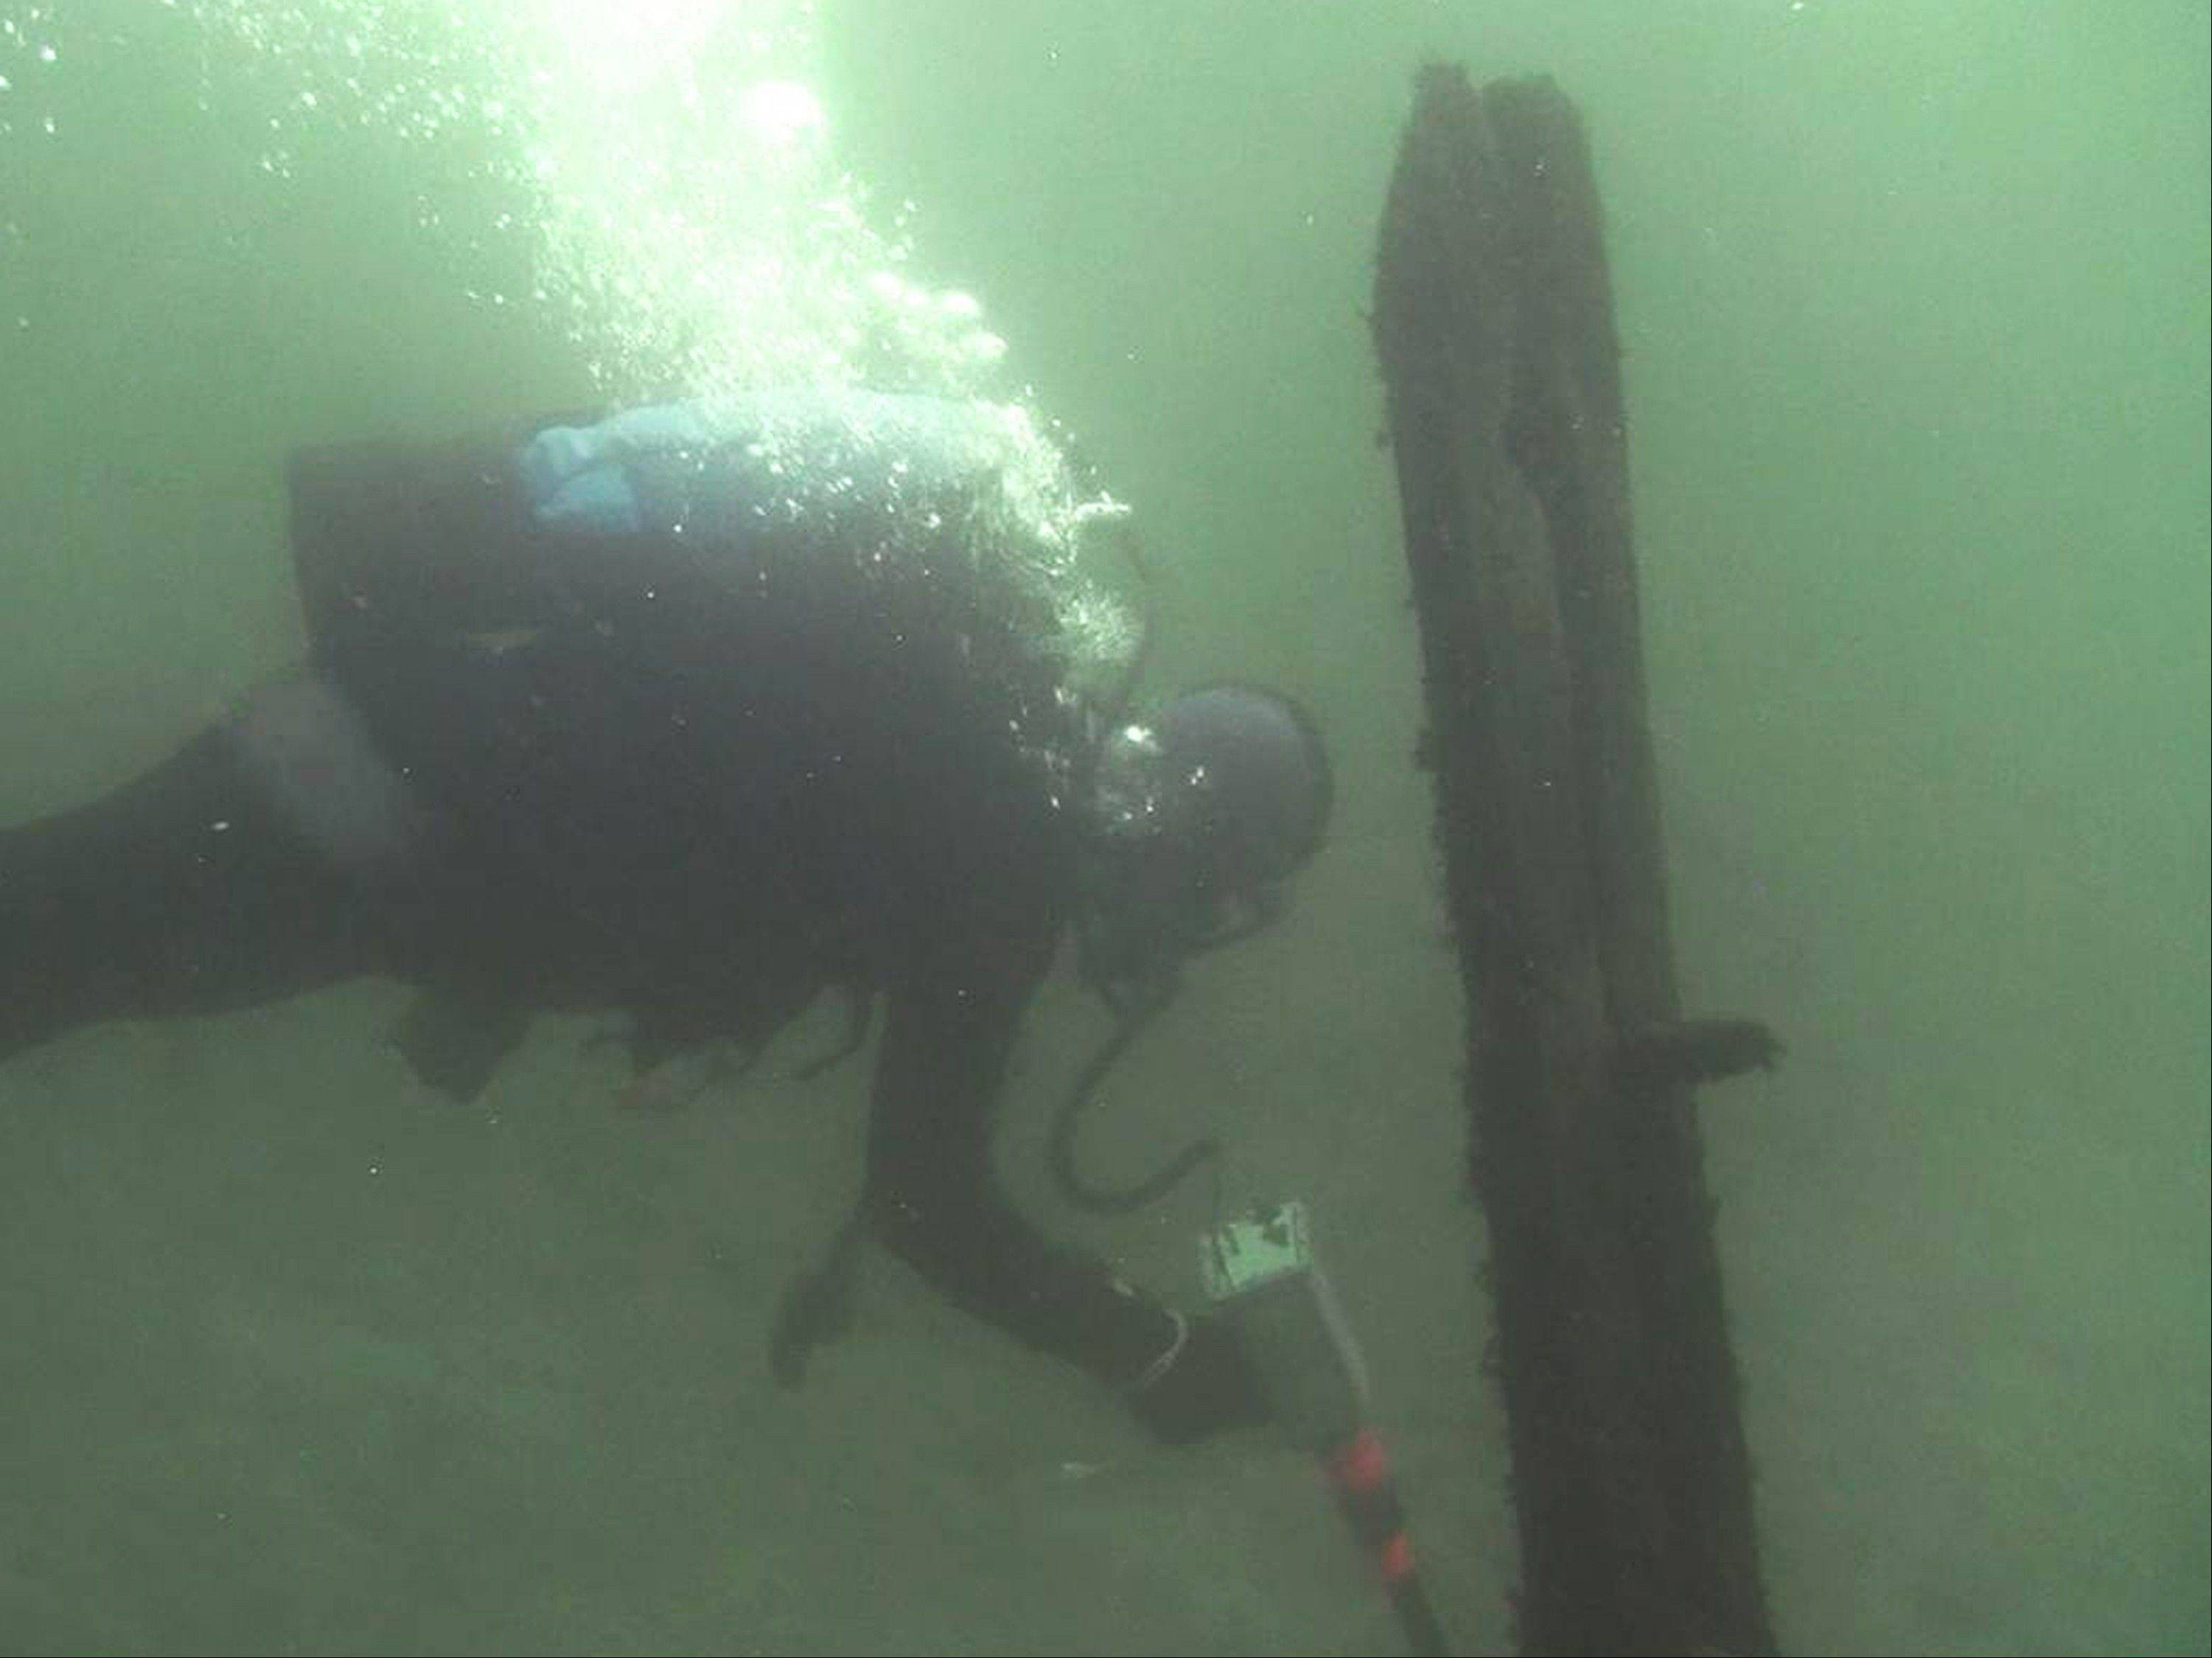 In October, diver Tom Kucharsky passes timbers protruding from the bottom of Lake Michigan that were discovered by Steve Libert in 2001.